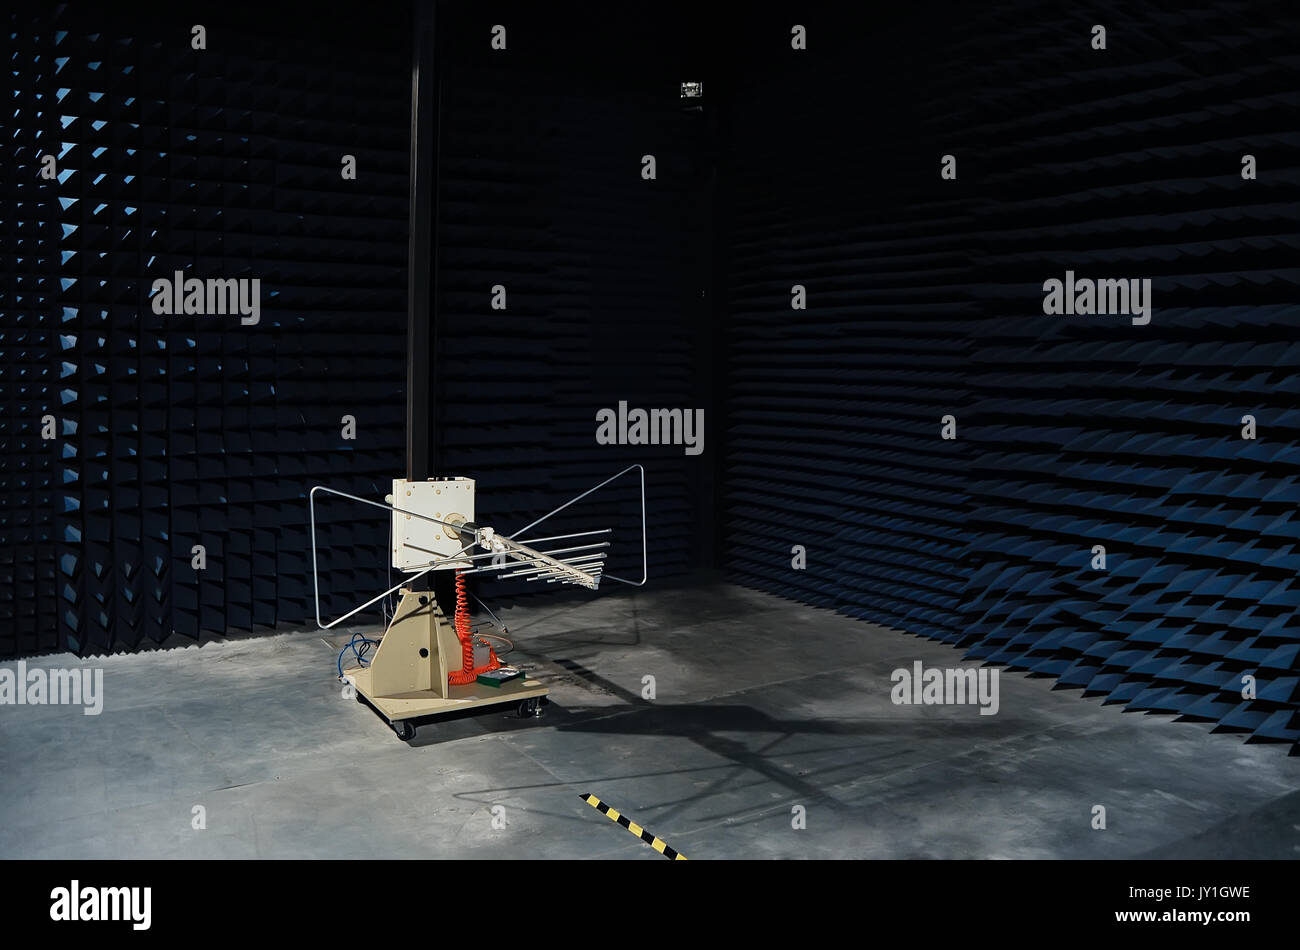 Testing of radio frequency products such as RF and ASK modules in soundproof lab - Stock Image